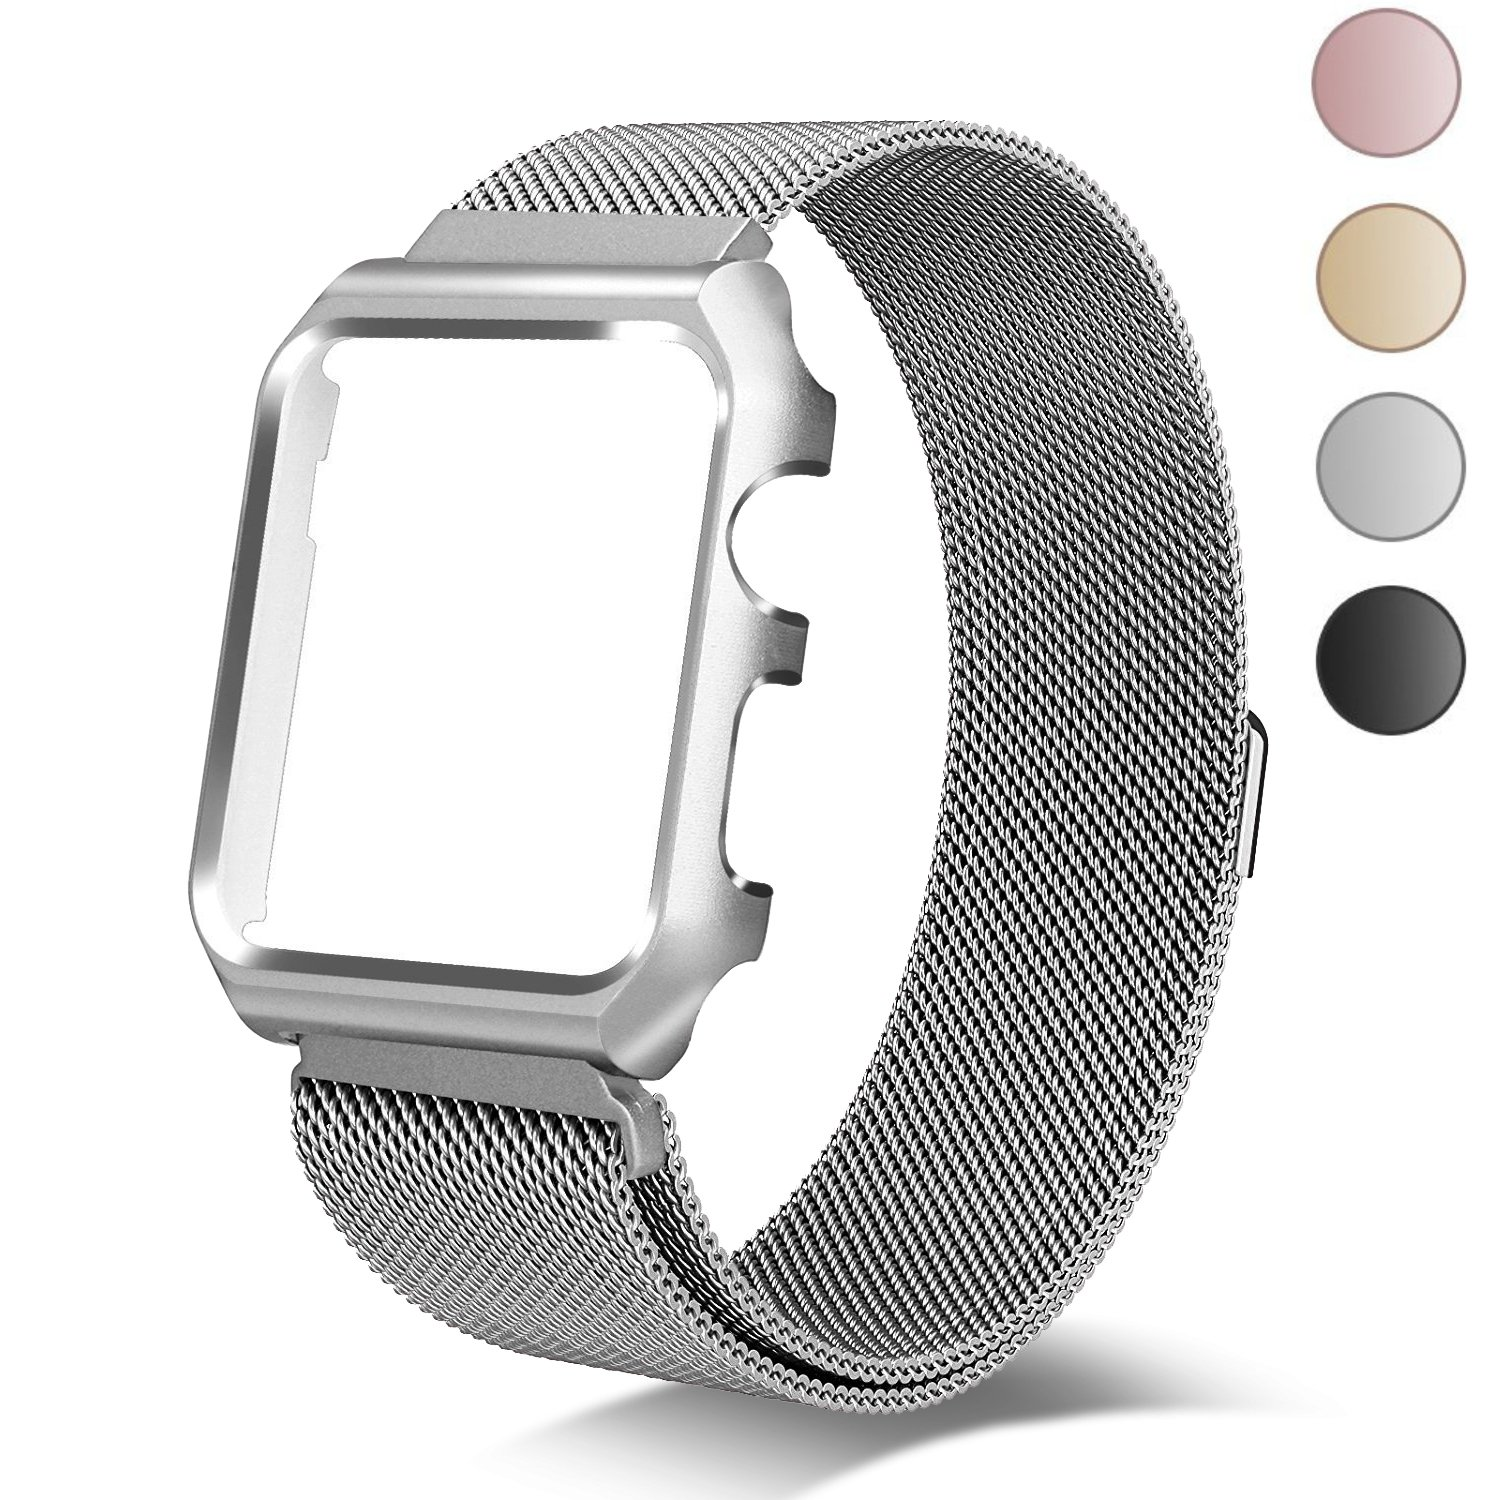 Chouqing 38mm Stainless Steel Mesh Band with Magnetic Closure Replacement Milanese Loop with Protective Case Compatible Apple Watch Band Series 3 Series 2 Series 1 Sport & Edition - Silver